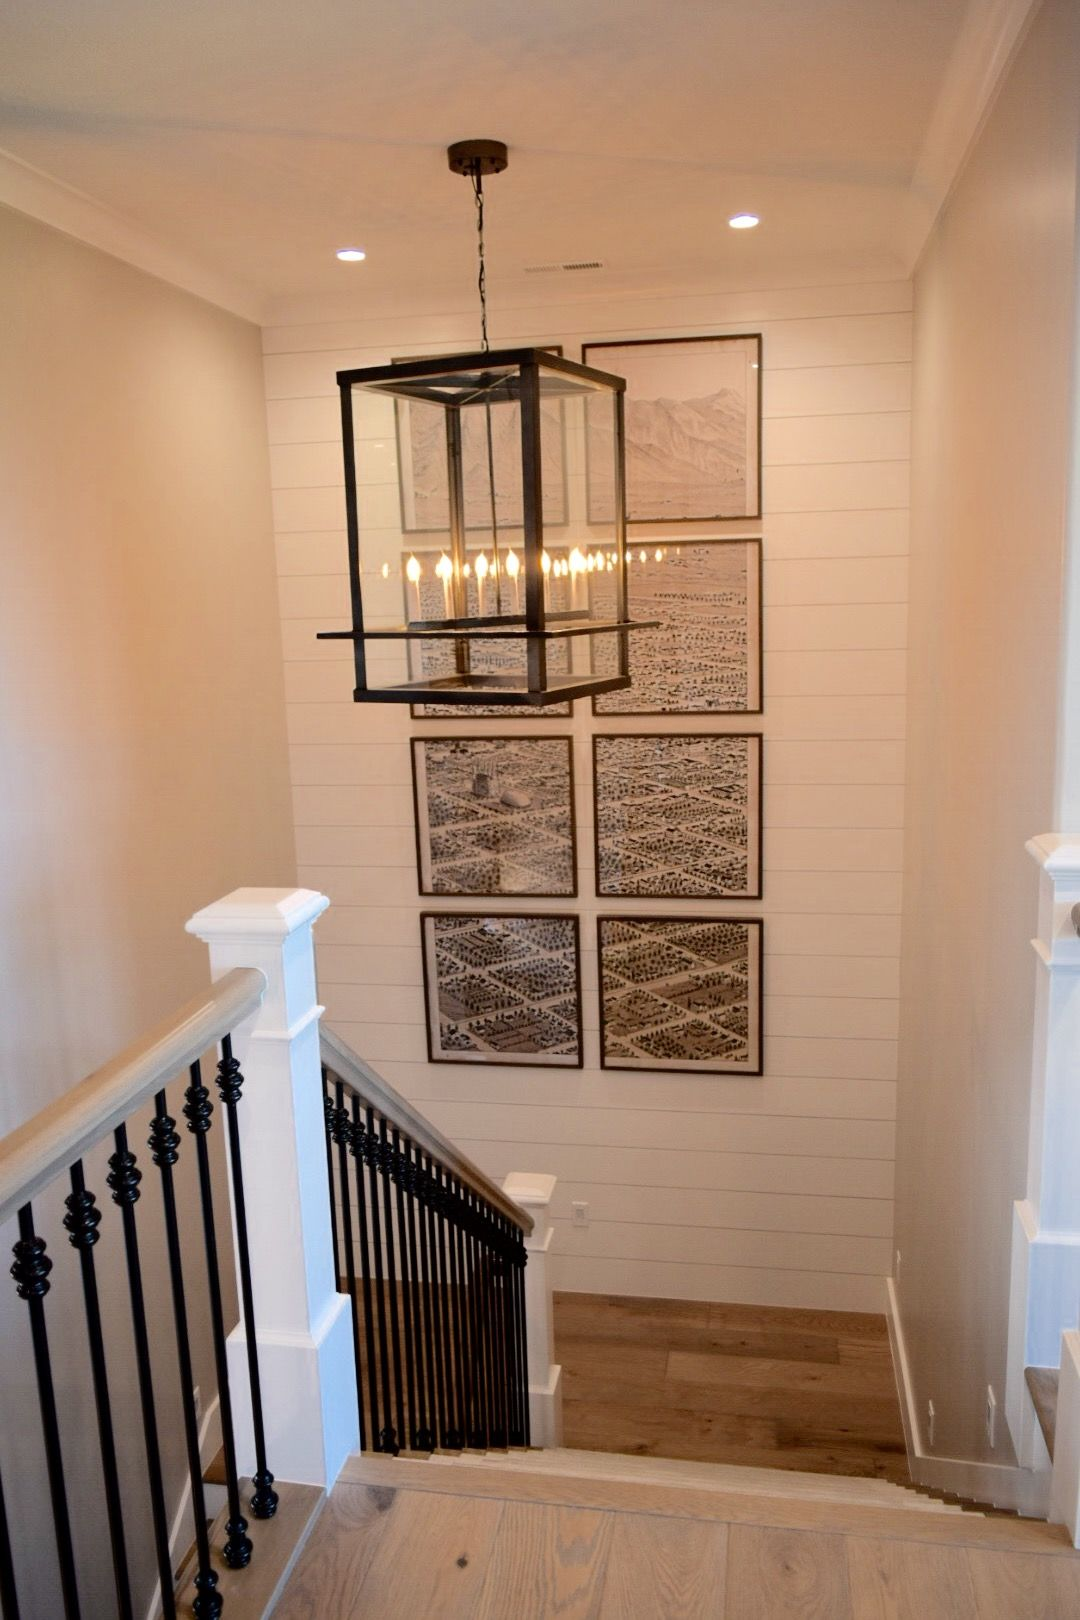 Basement Stair Landing Decorating: Artwork In Stairwell U-shaped Stairs